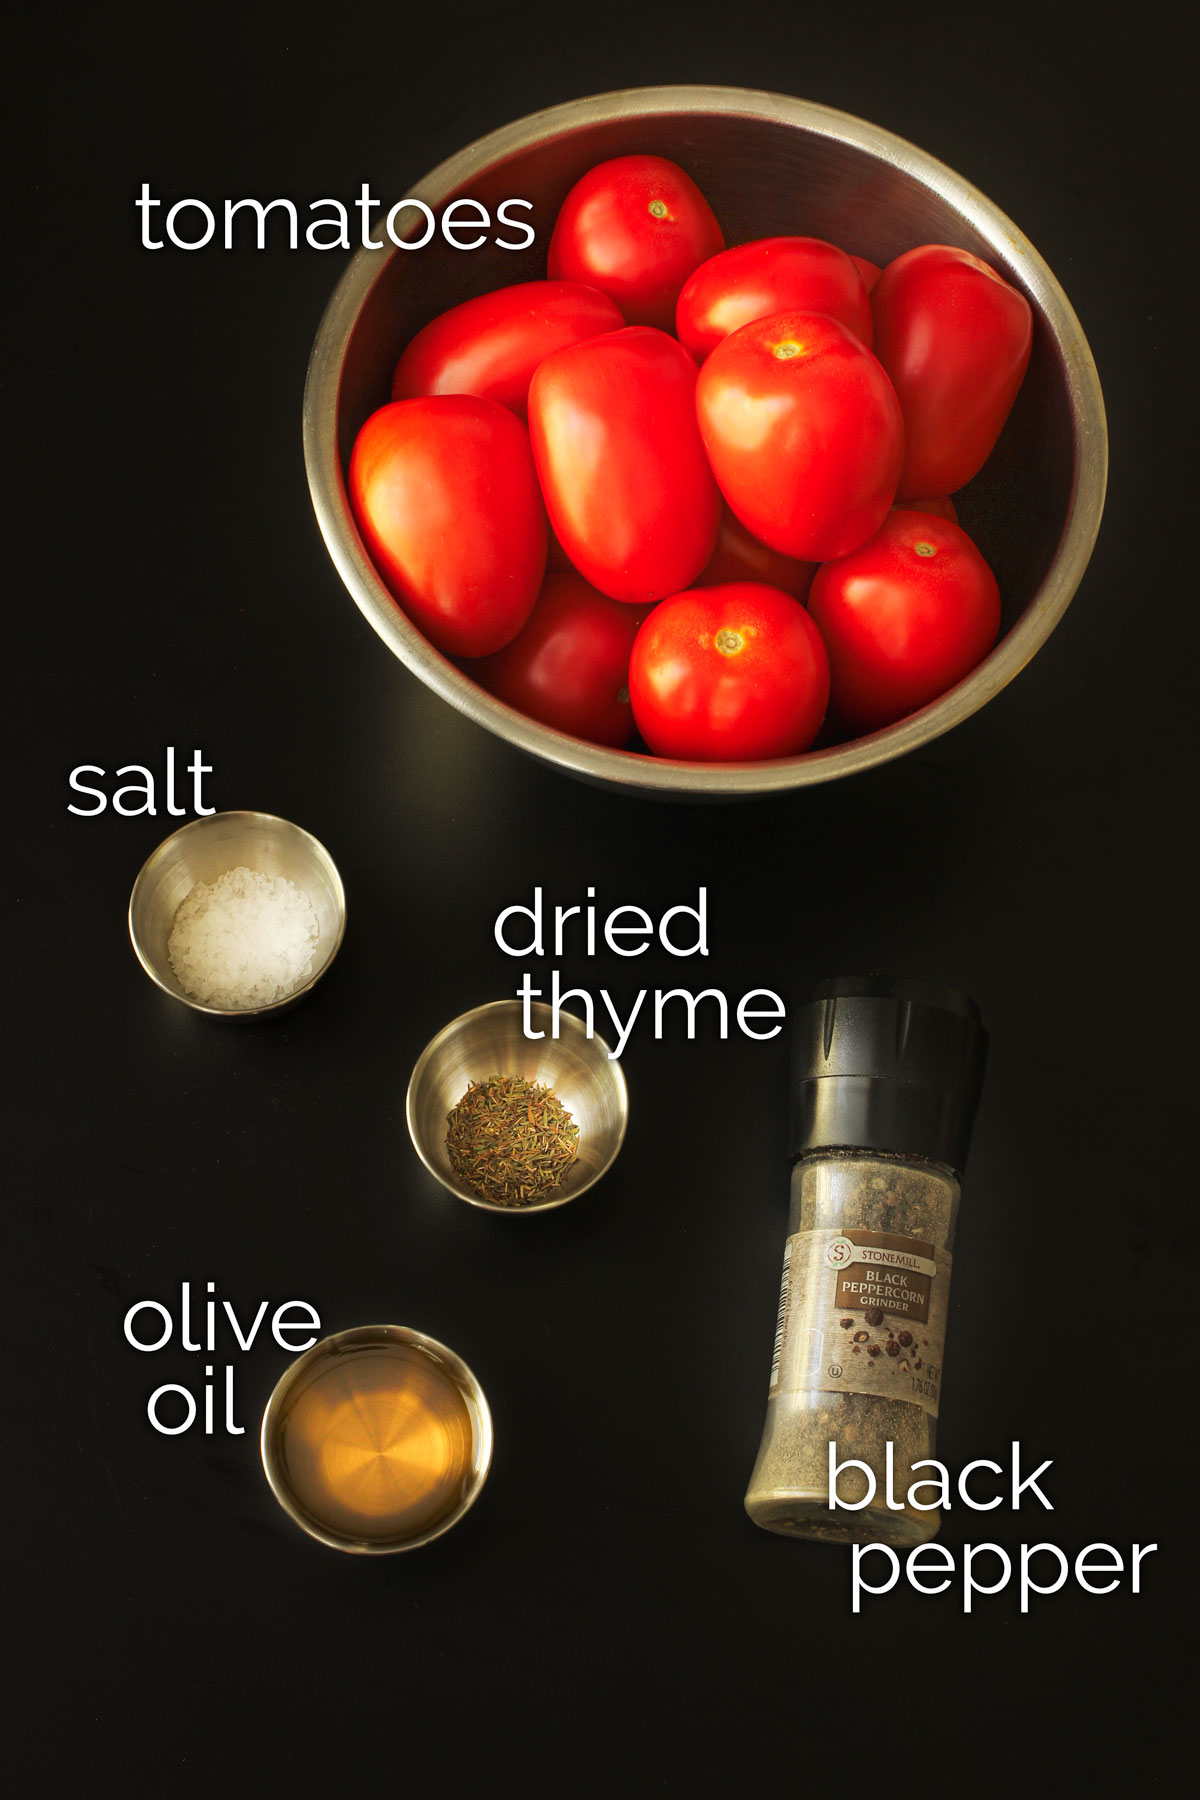 ingredients for roasting tomatoes in the oven laid out on black tabletop.